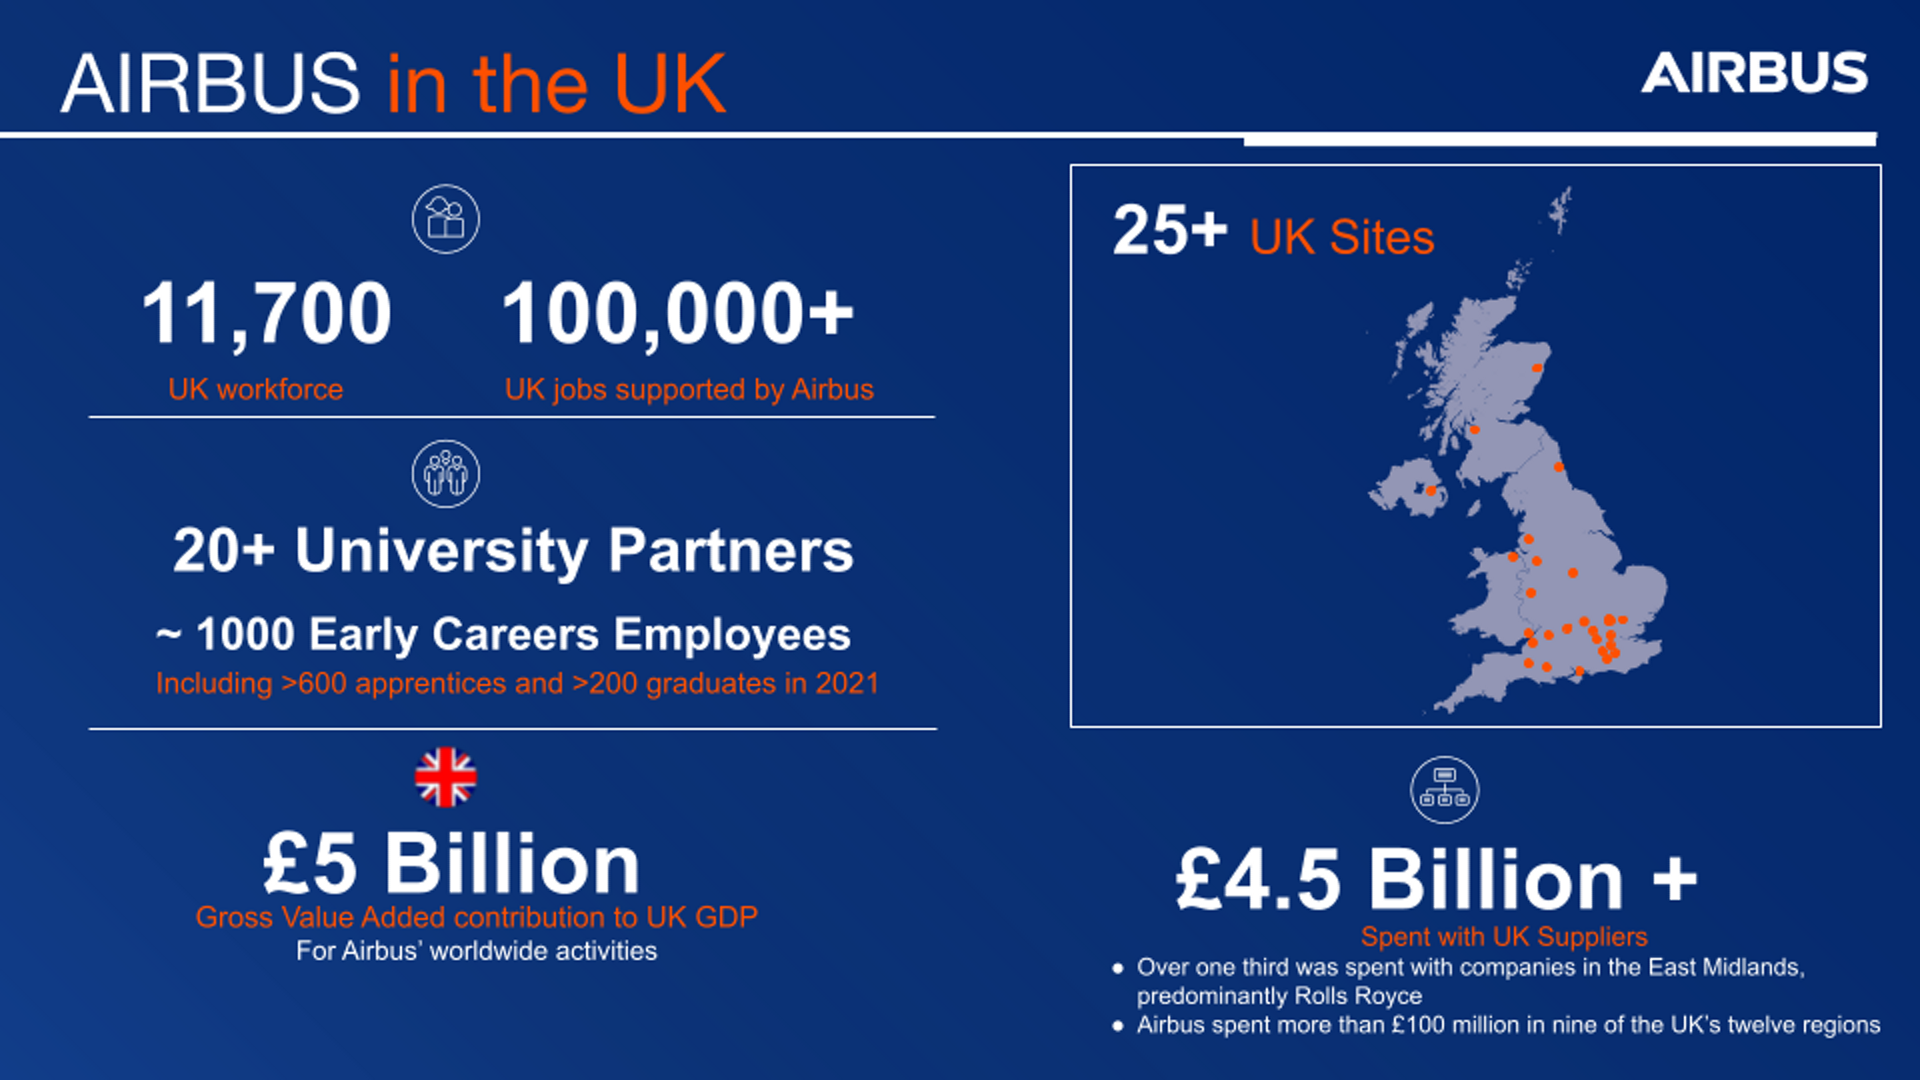 An infographic highlighting Airbus' presence in the UK, plus its contribution to the local economy.